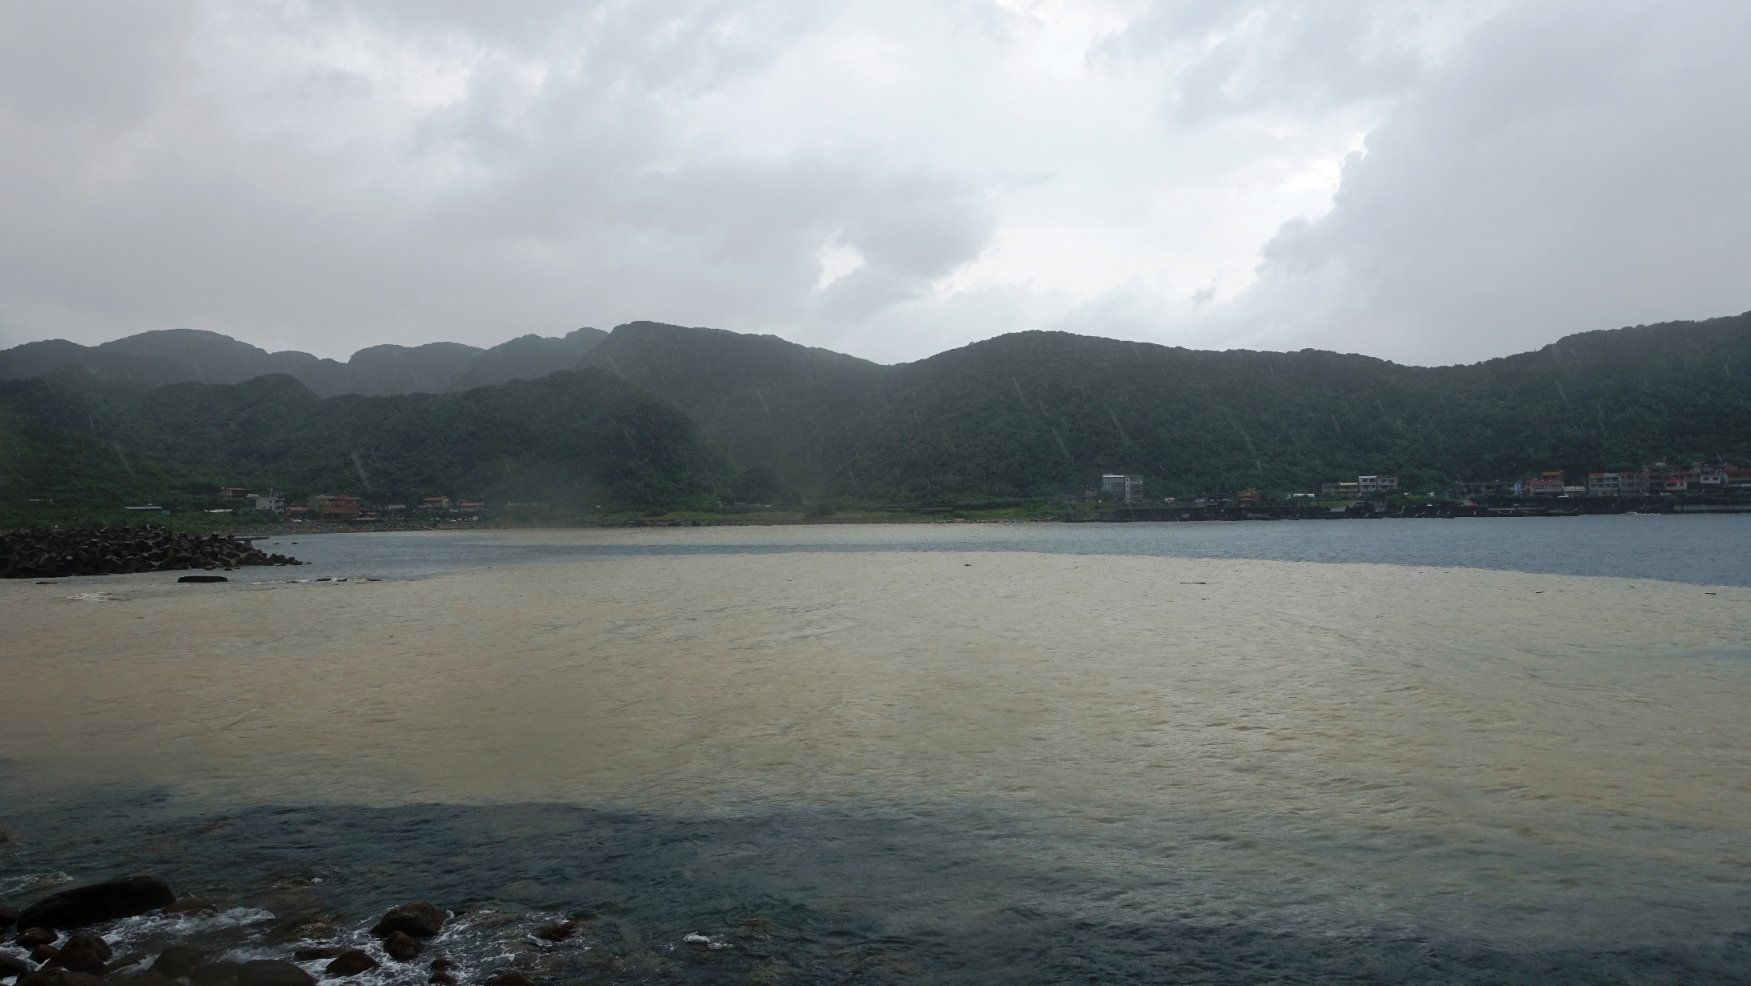 台灣-東北角-潛點-taiwan-diving-spot-Northeast-coast